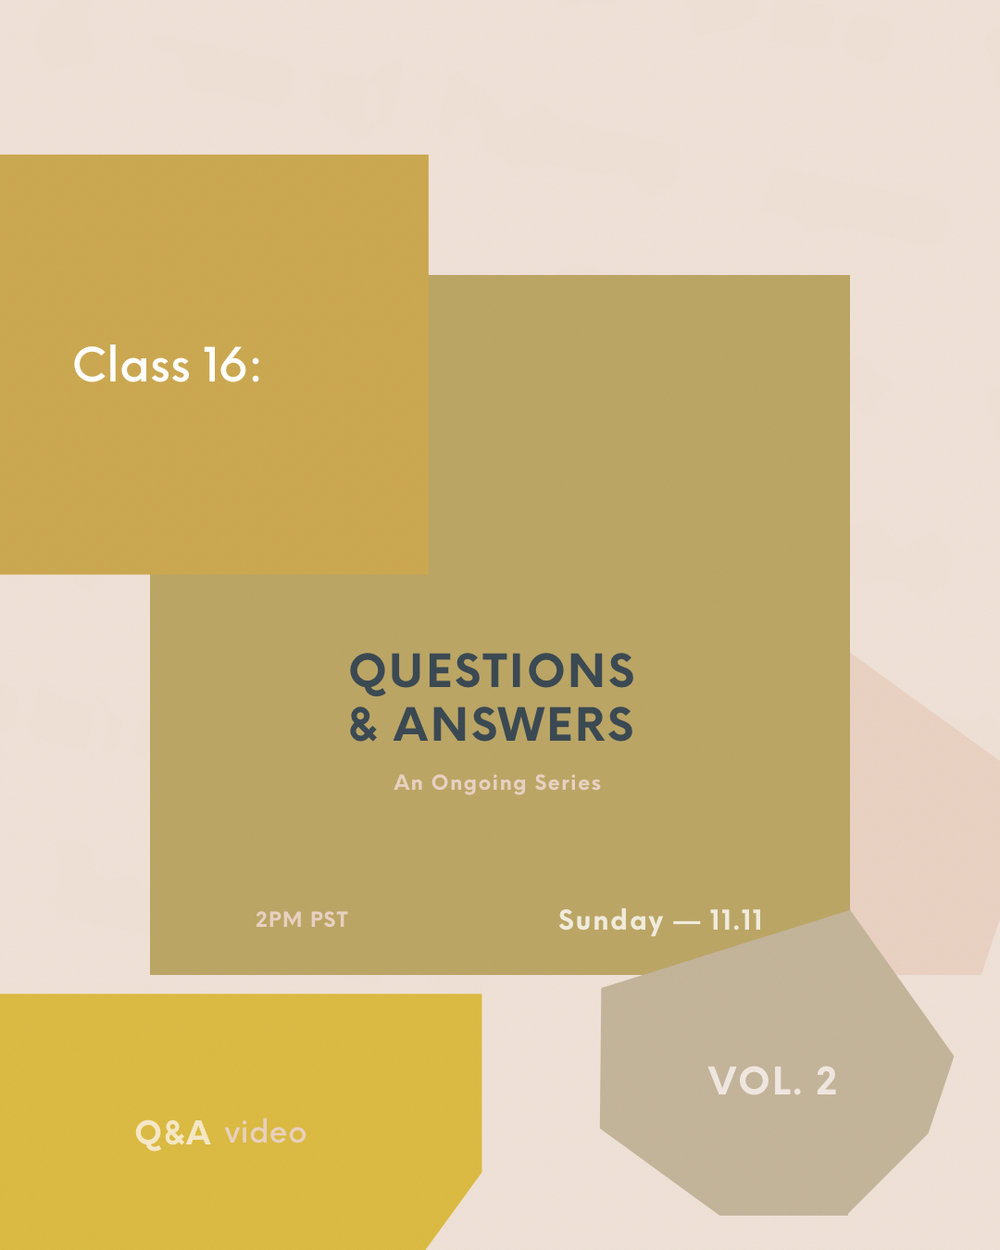 Class 16: Q&A Vol. 2 - This week's video class is the second in our Q&A series. So many great and essential questions come through on the regular and this Q&A will cover some of them, including: